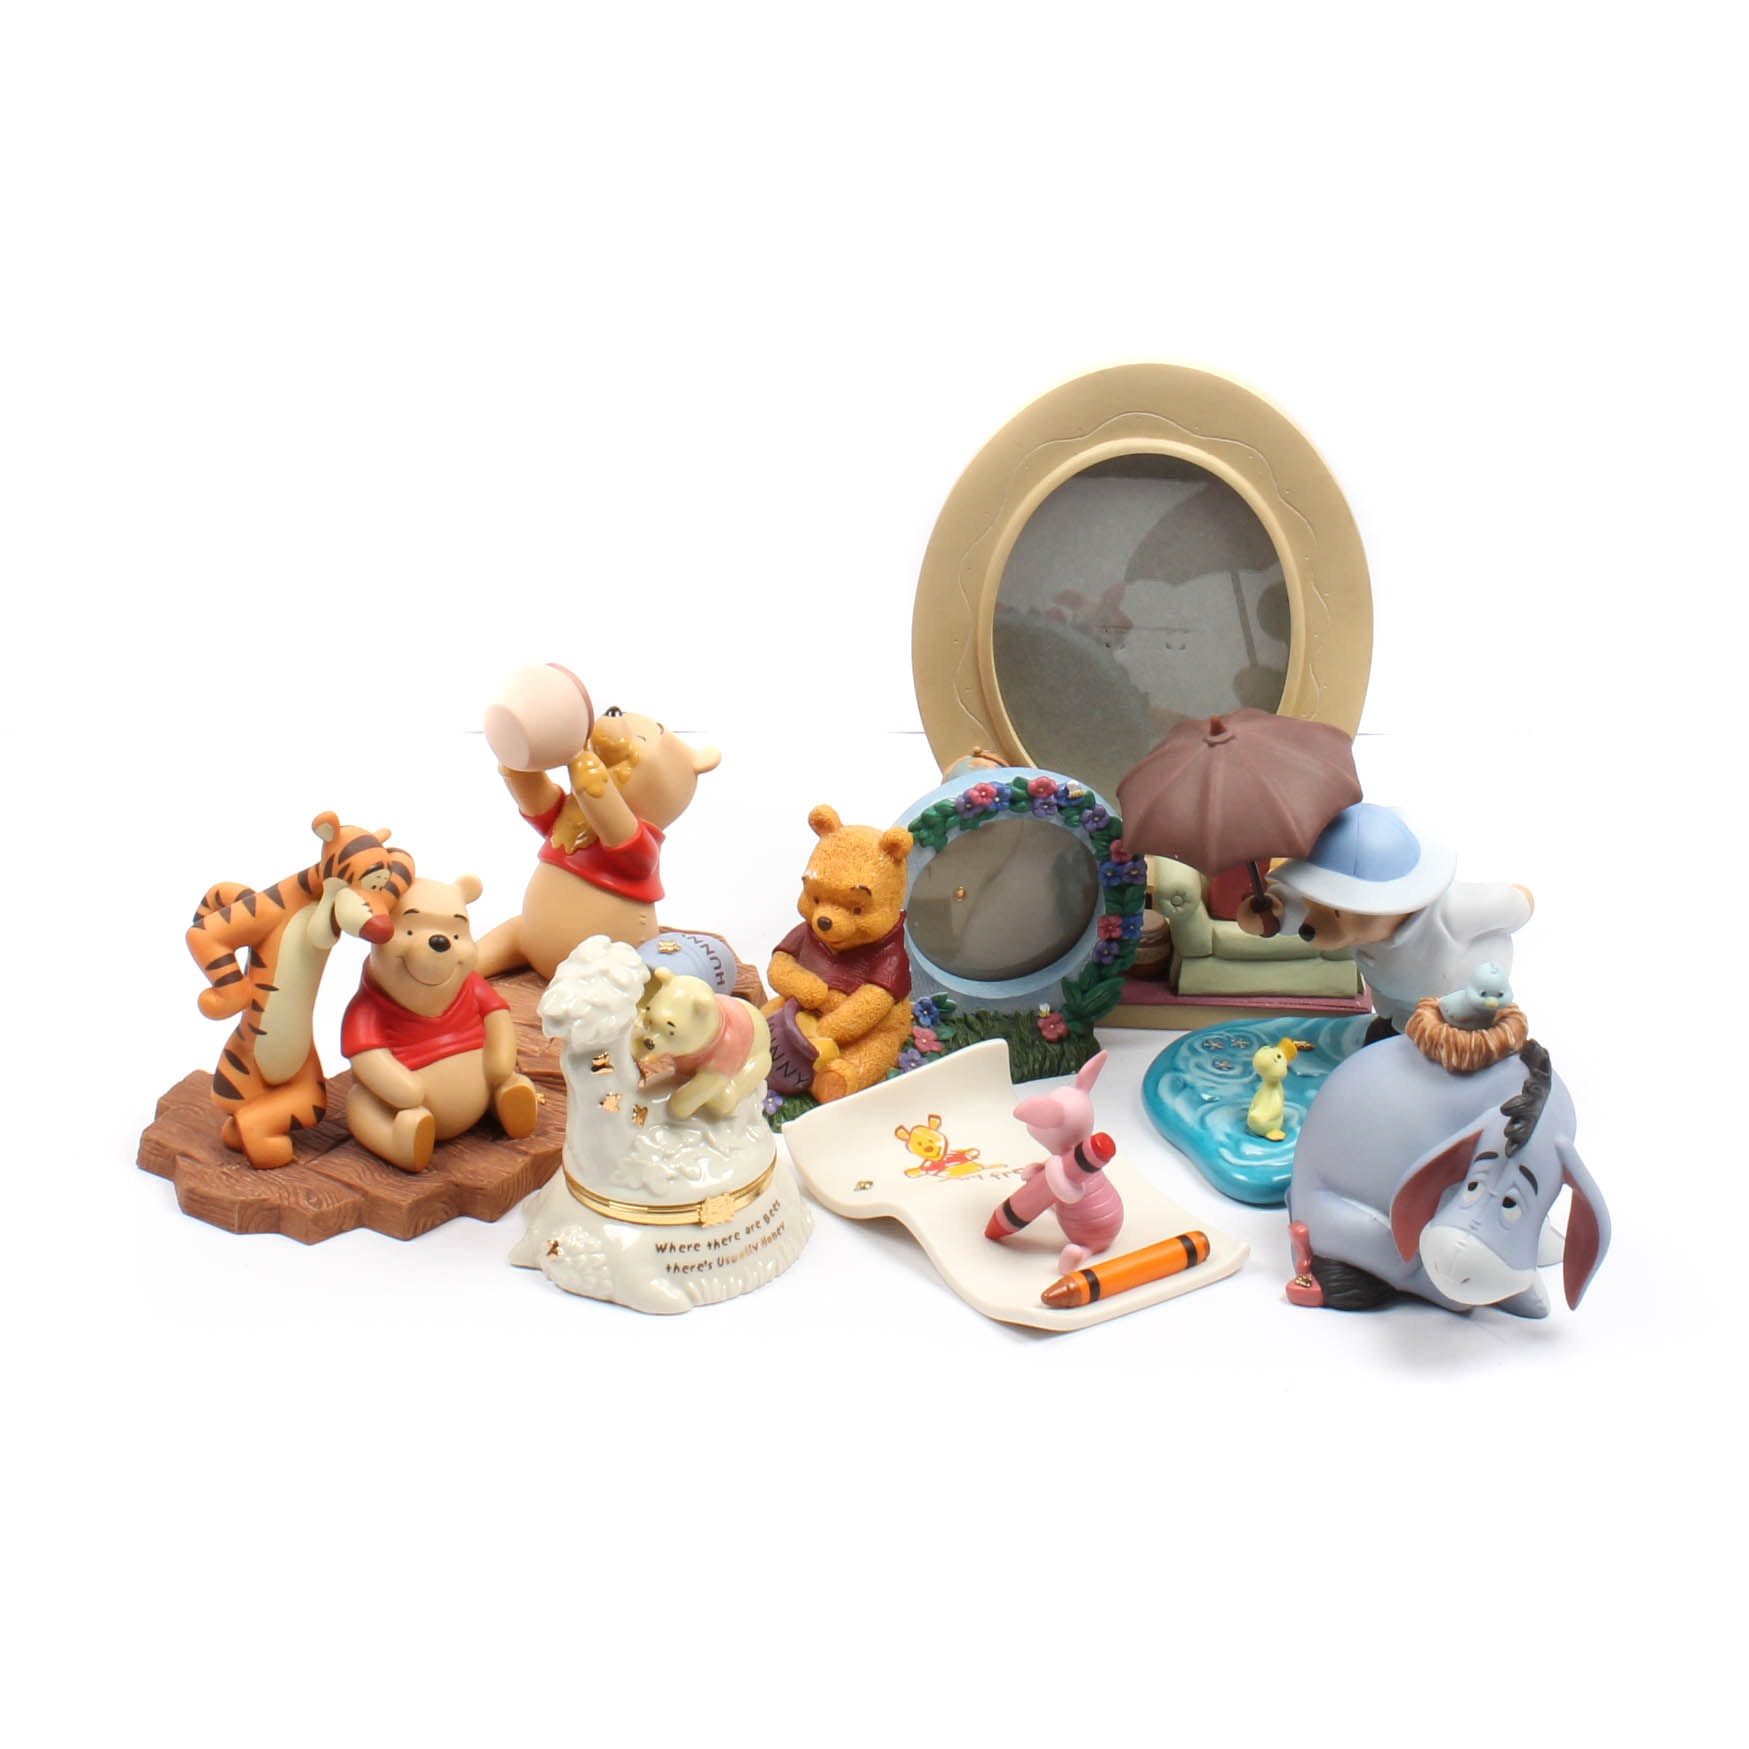 Winnie the Pooh Collectible Figurines